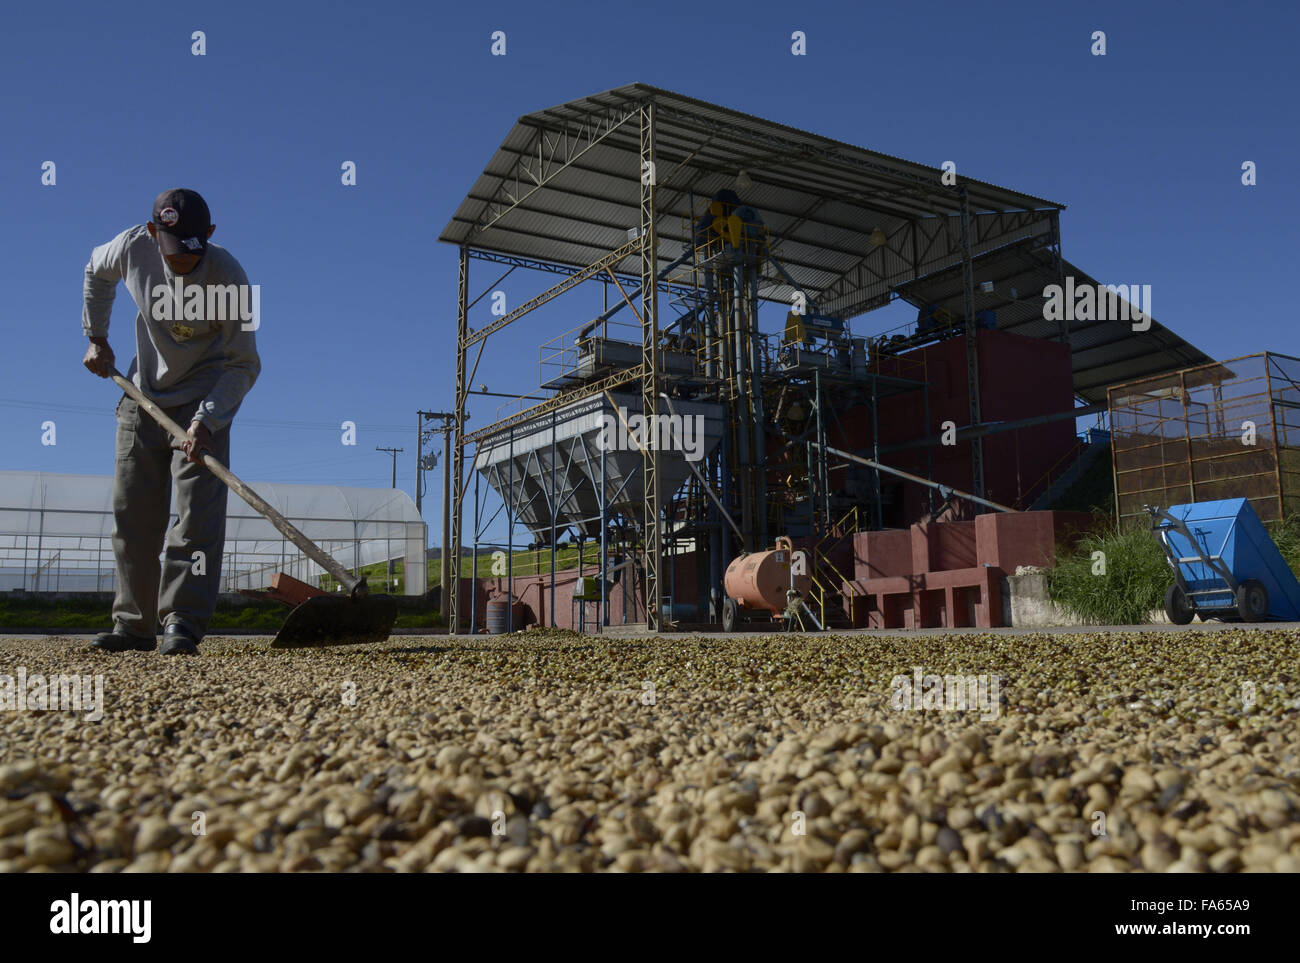 Worker spreads coffee beans drying in farm yard - Stock Image